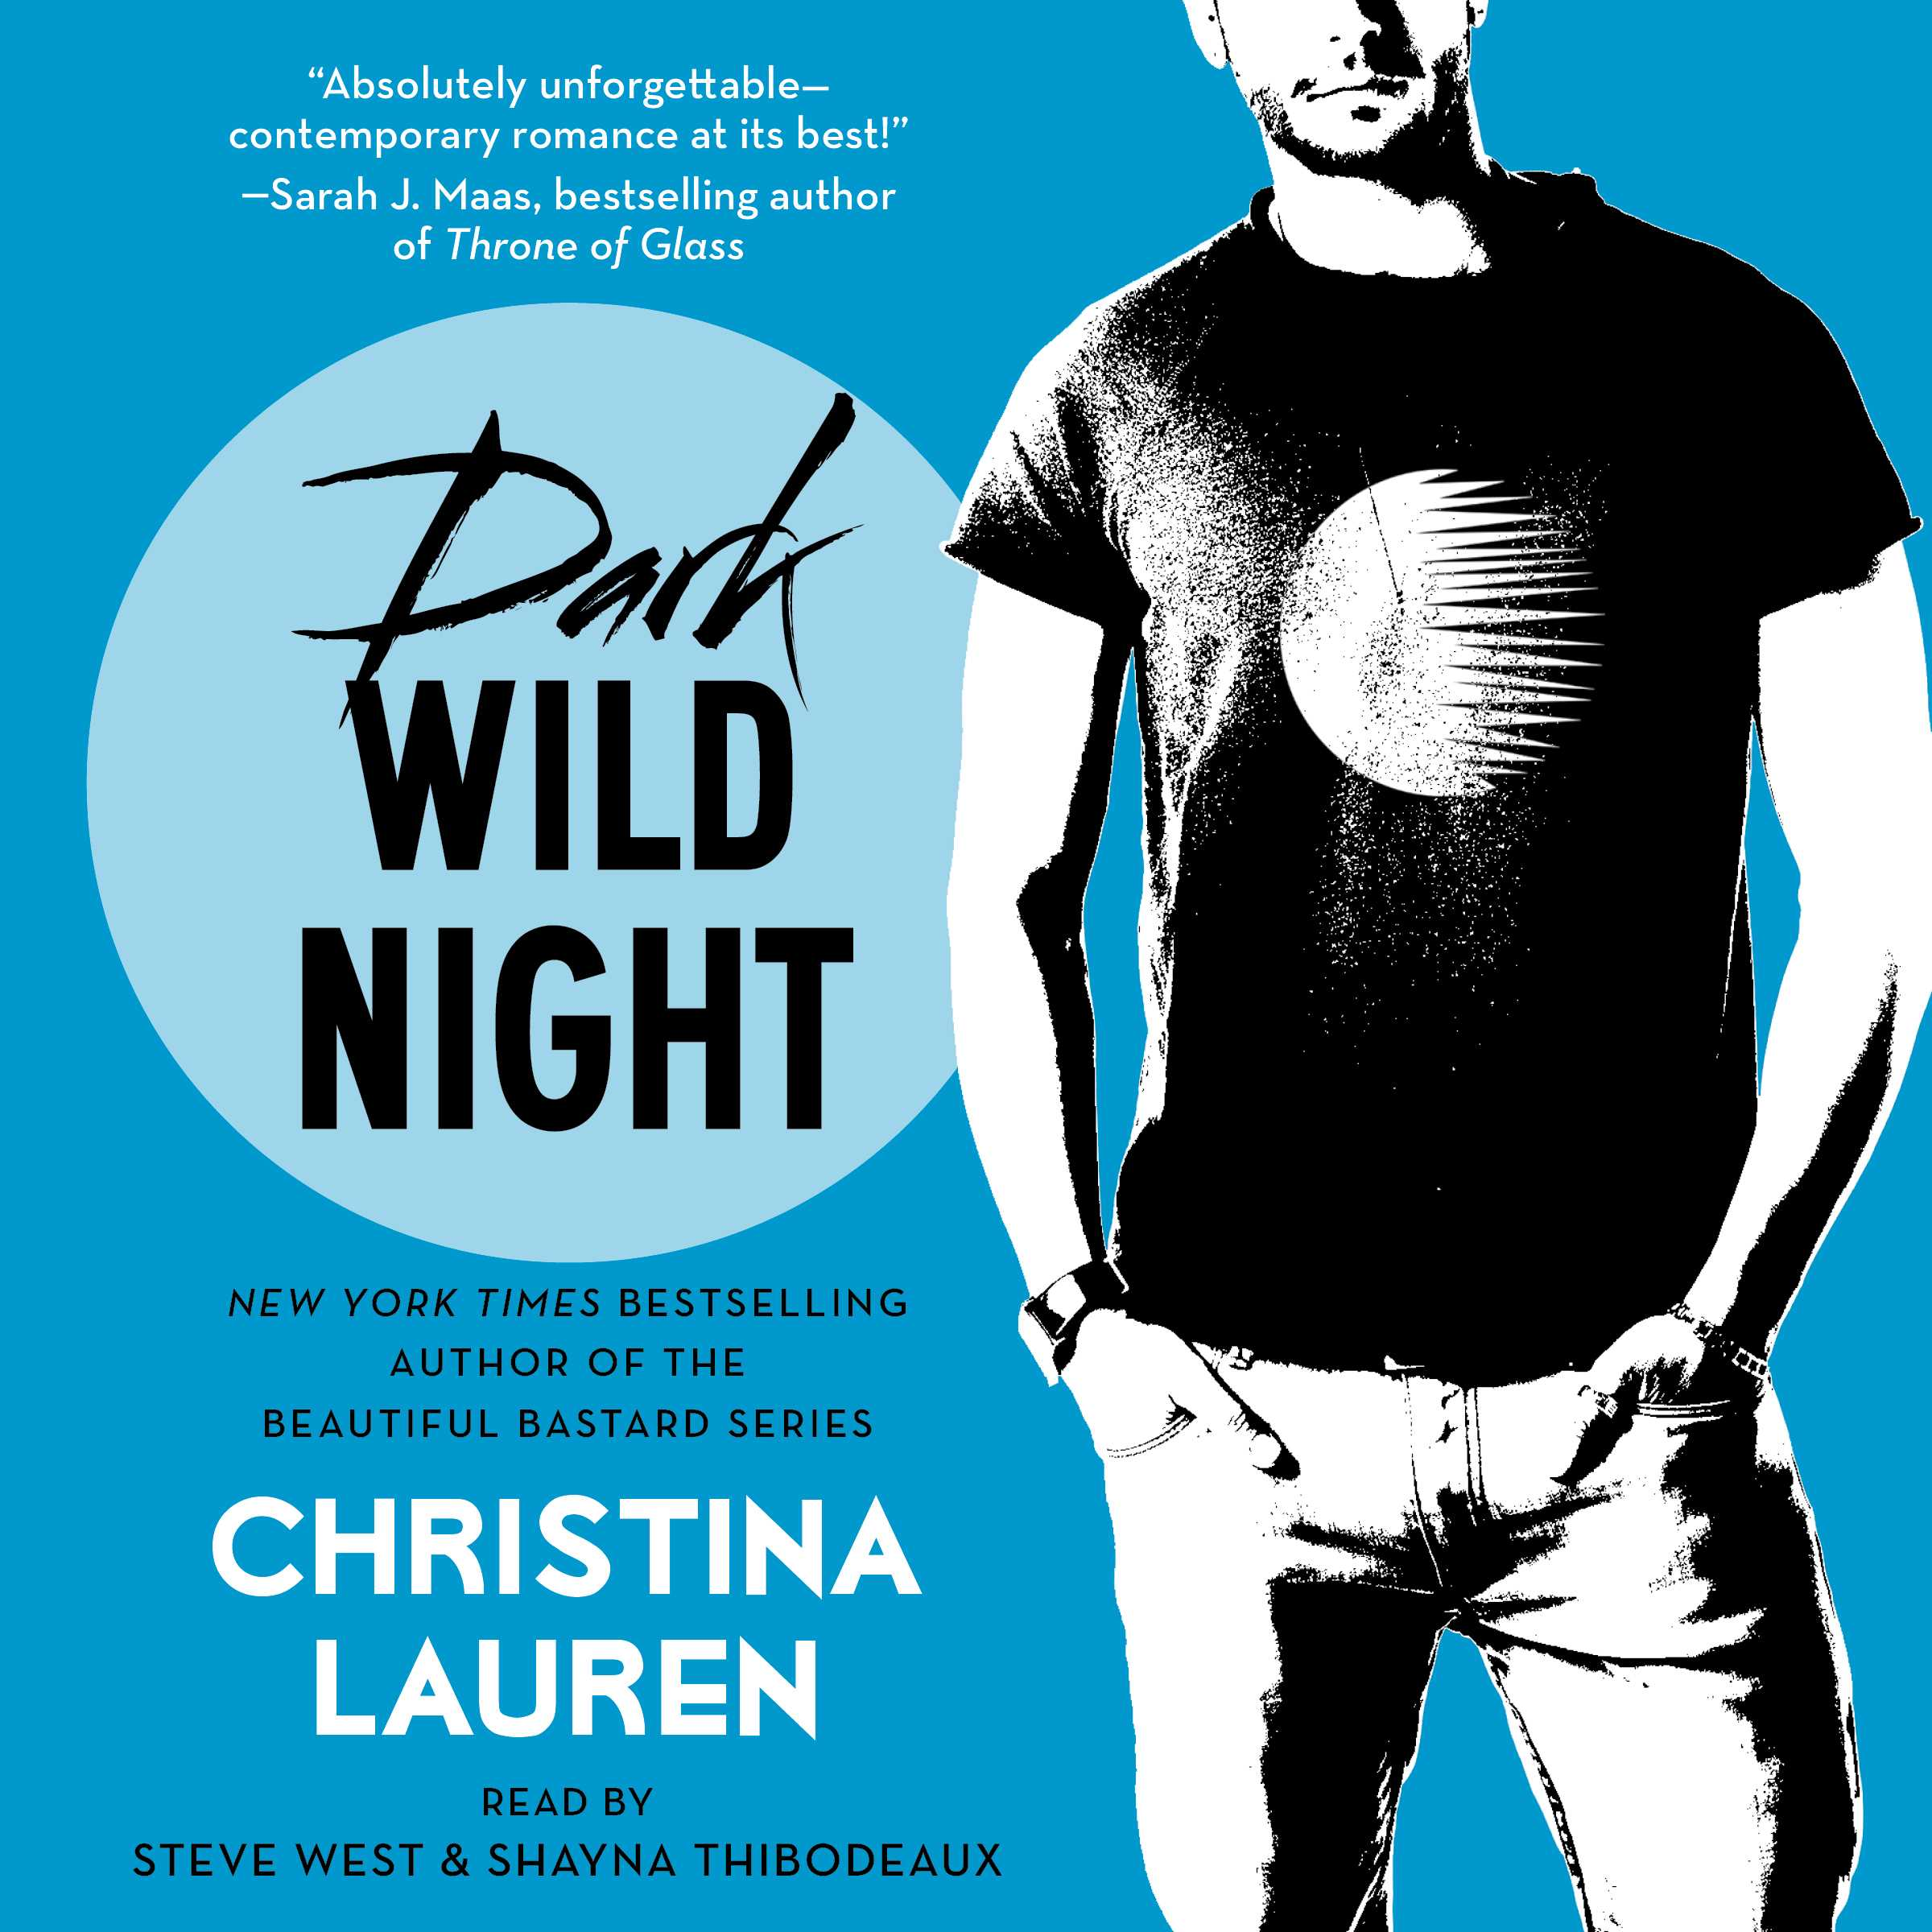 Dark wild night 9781442384828 hr